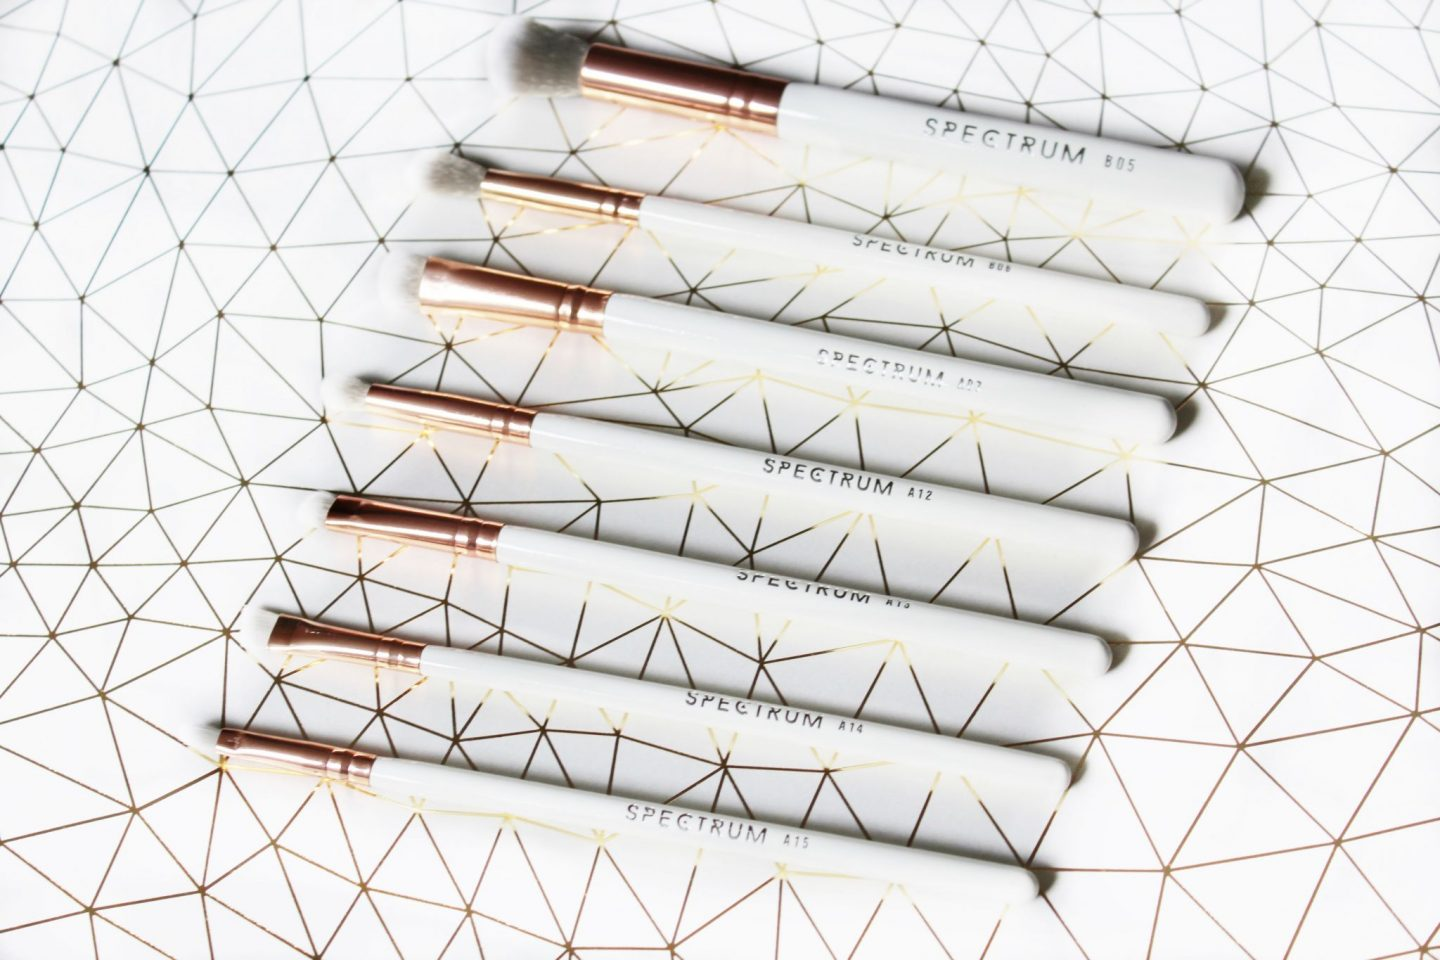 Spectrum Brushes Marbleous Eye, Brow and Lip Brushes